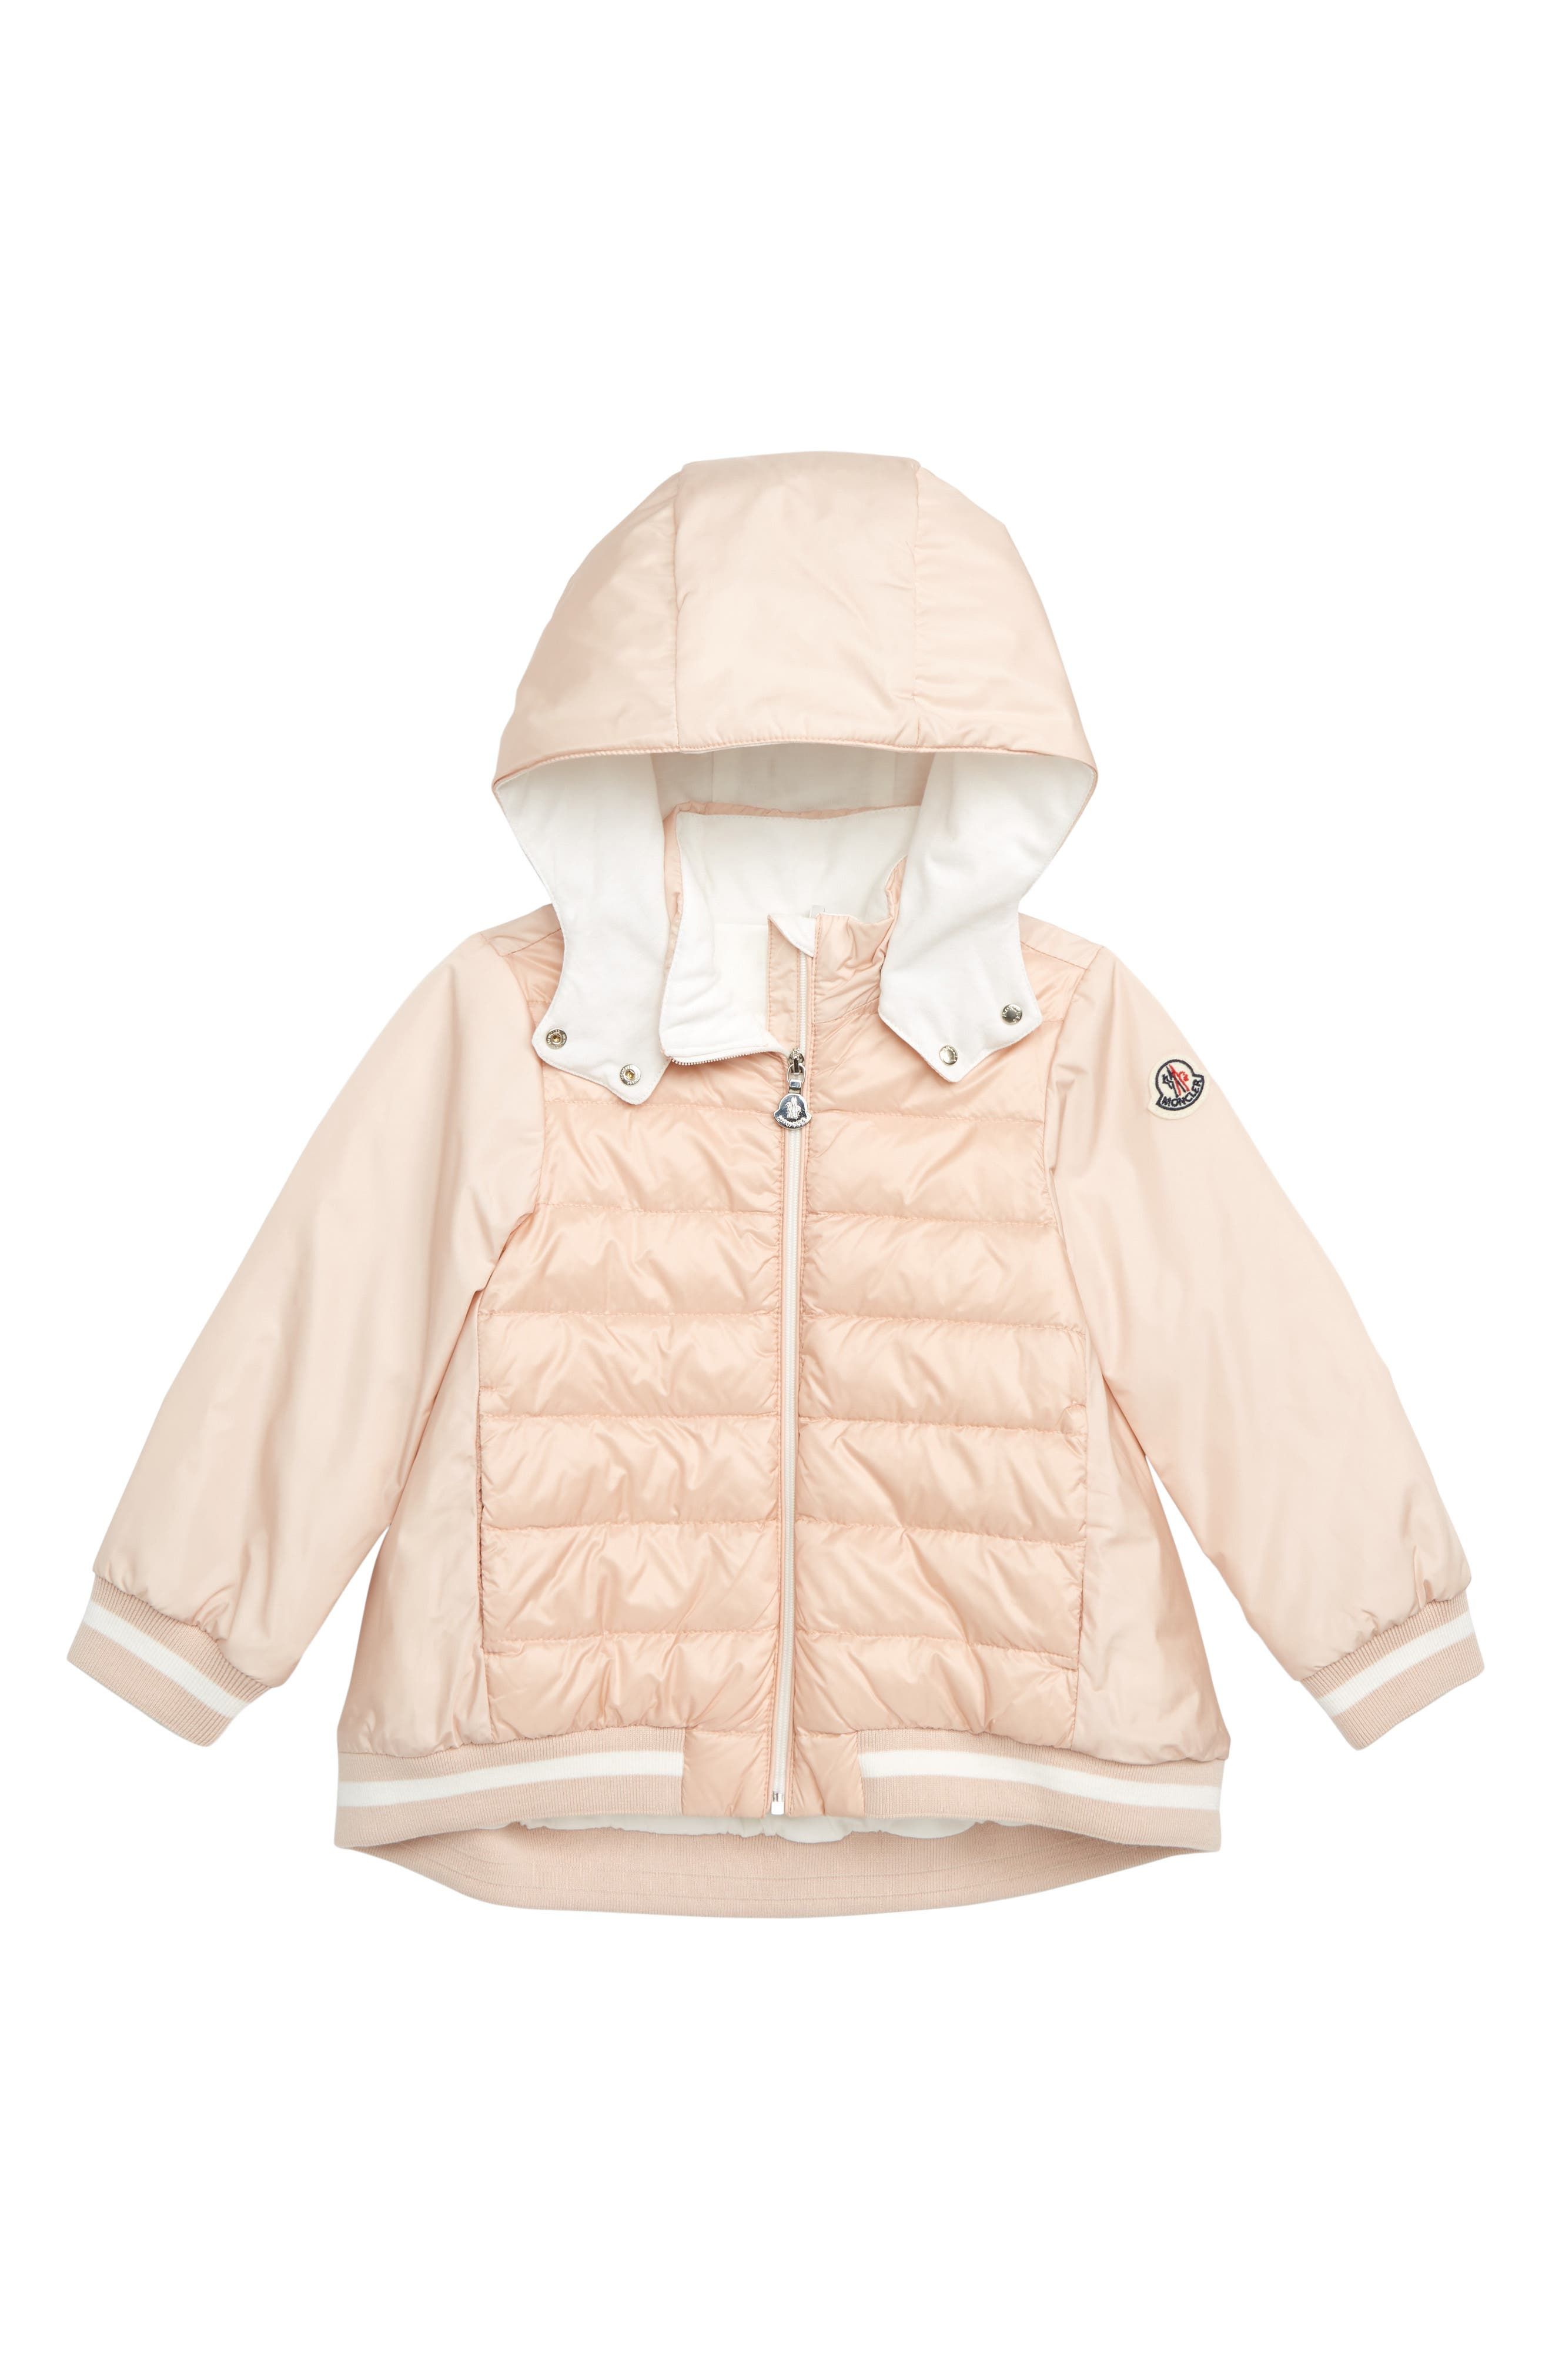 MONCLER, Tureia Hooded Down Jacket, Main thumbnail 1, color, 50B LT PINK